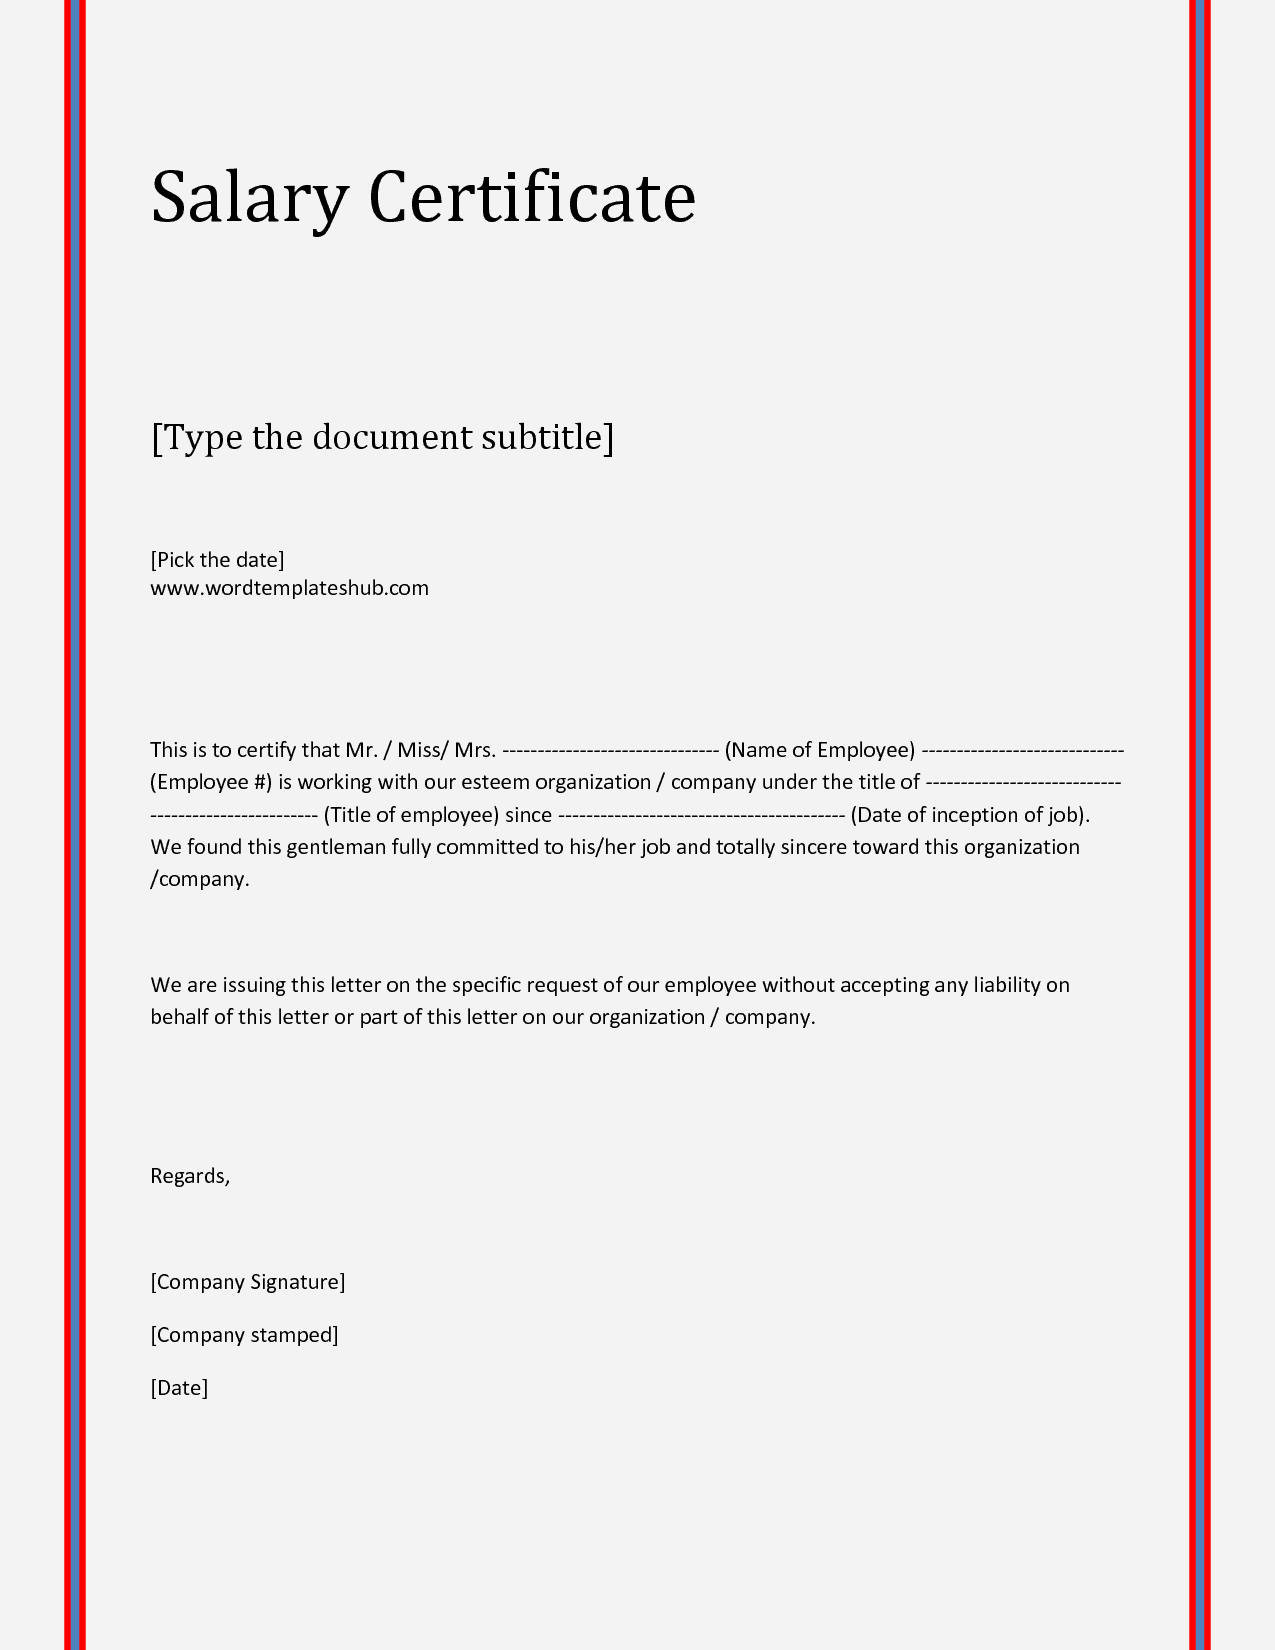 Salary Certificate Form flyer templates word baby shower template – Certificate Format in Word